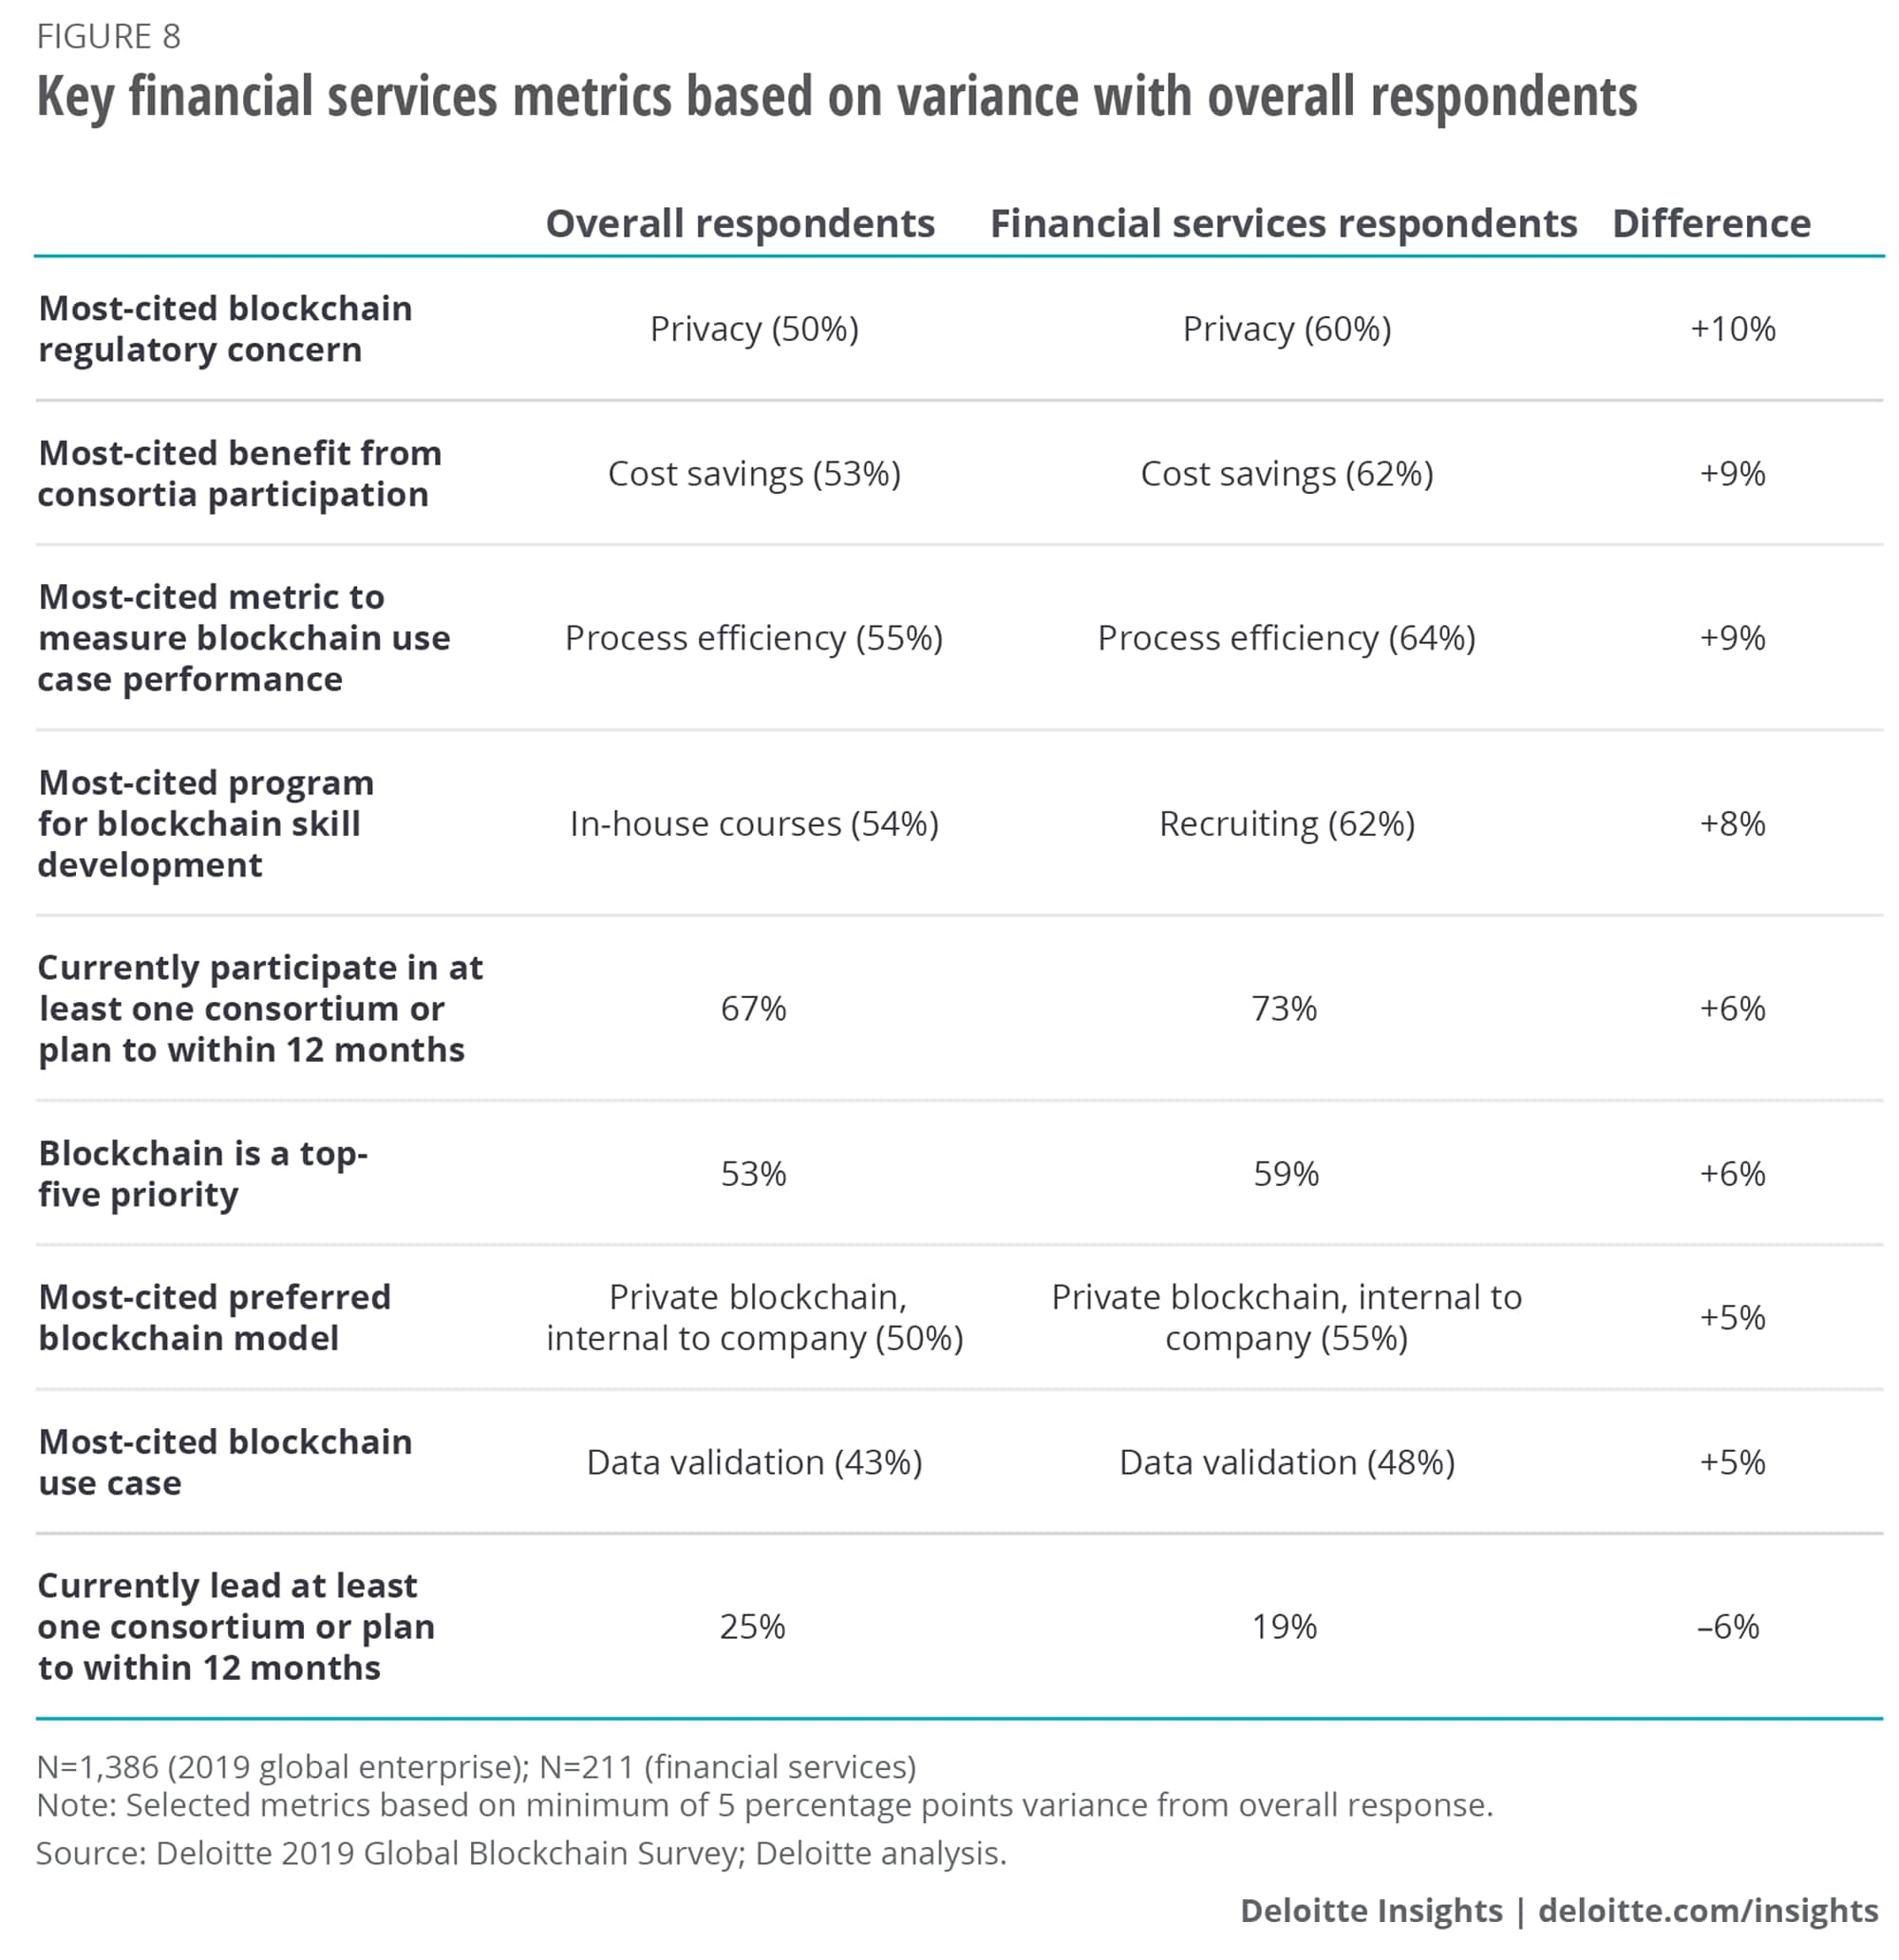 Key financial services metrics based on variance with overall respondents